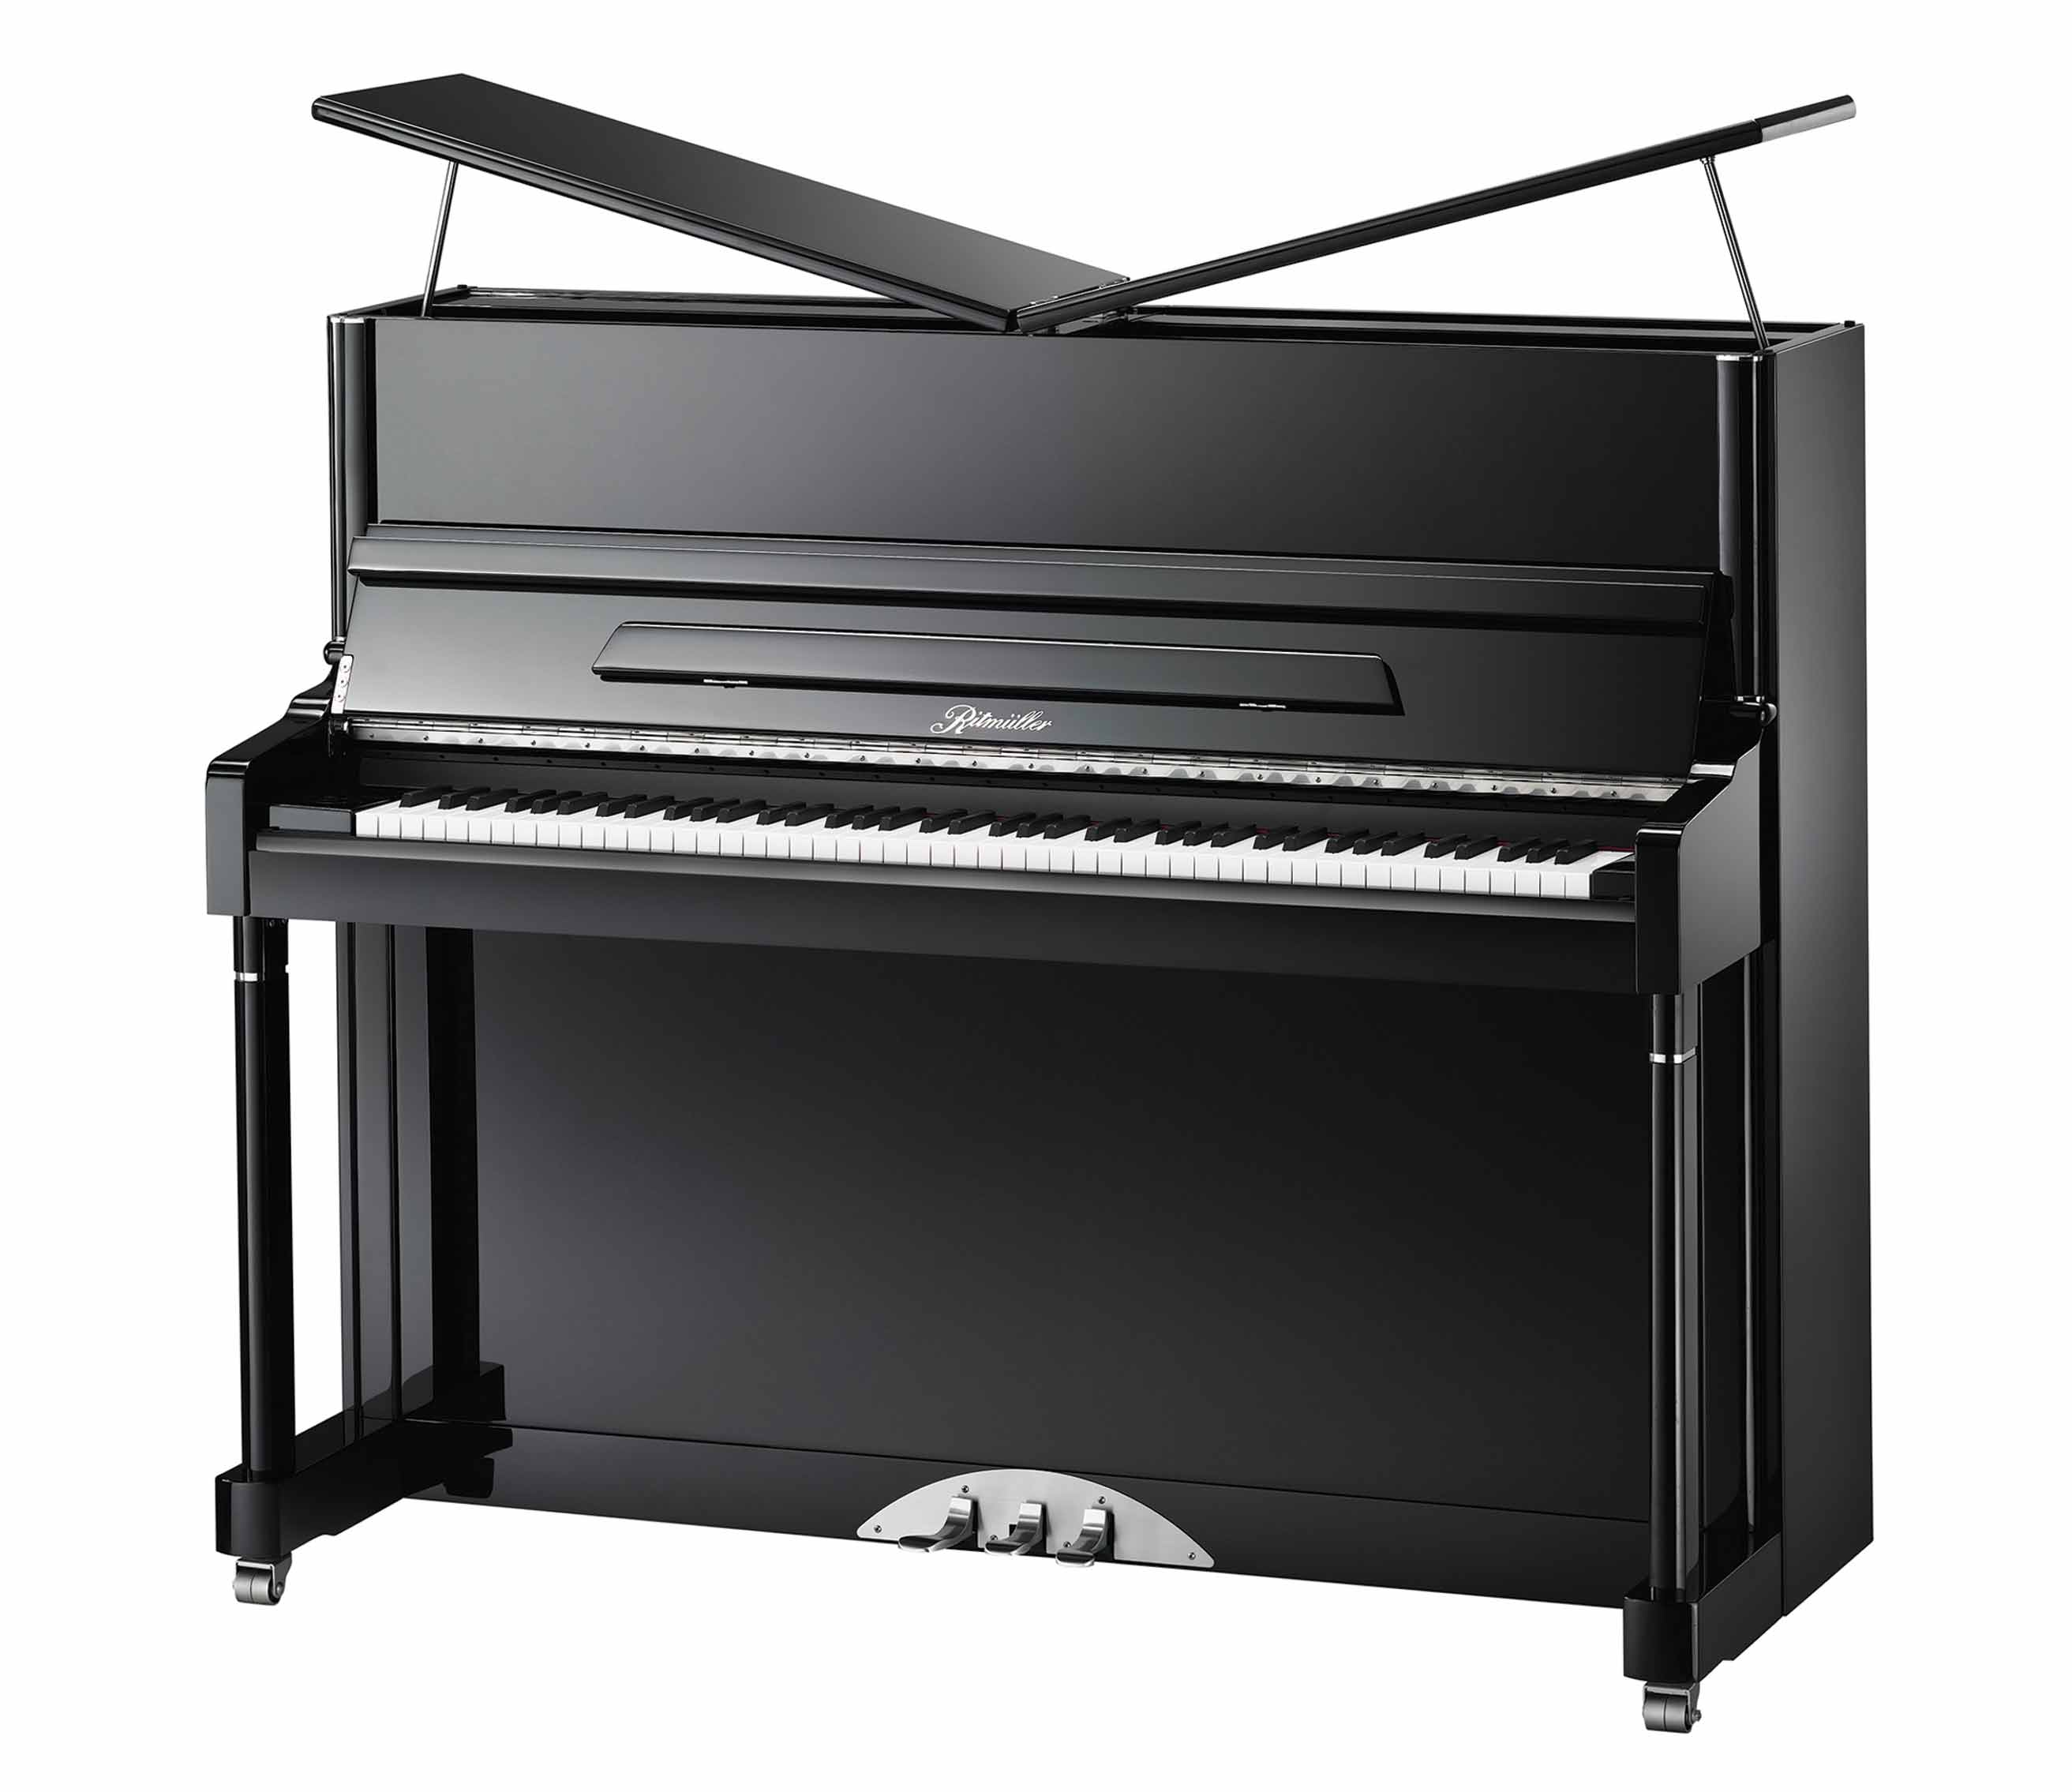 Ritmüller R2 Butterfly Lid Studio upright piano in Ebony Polish finish